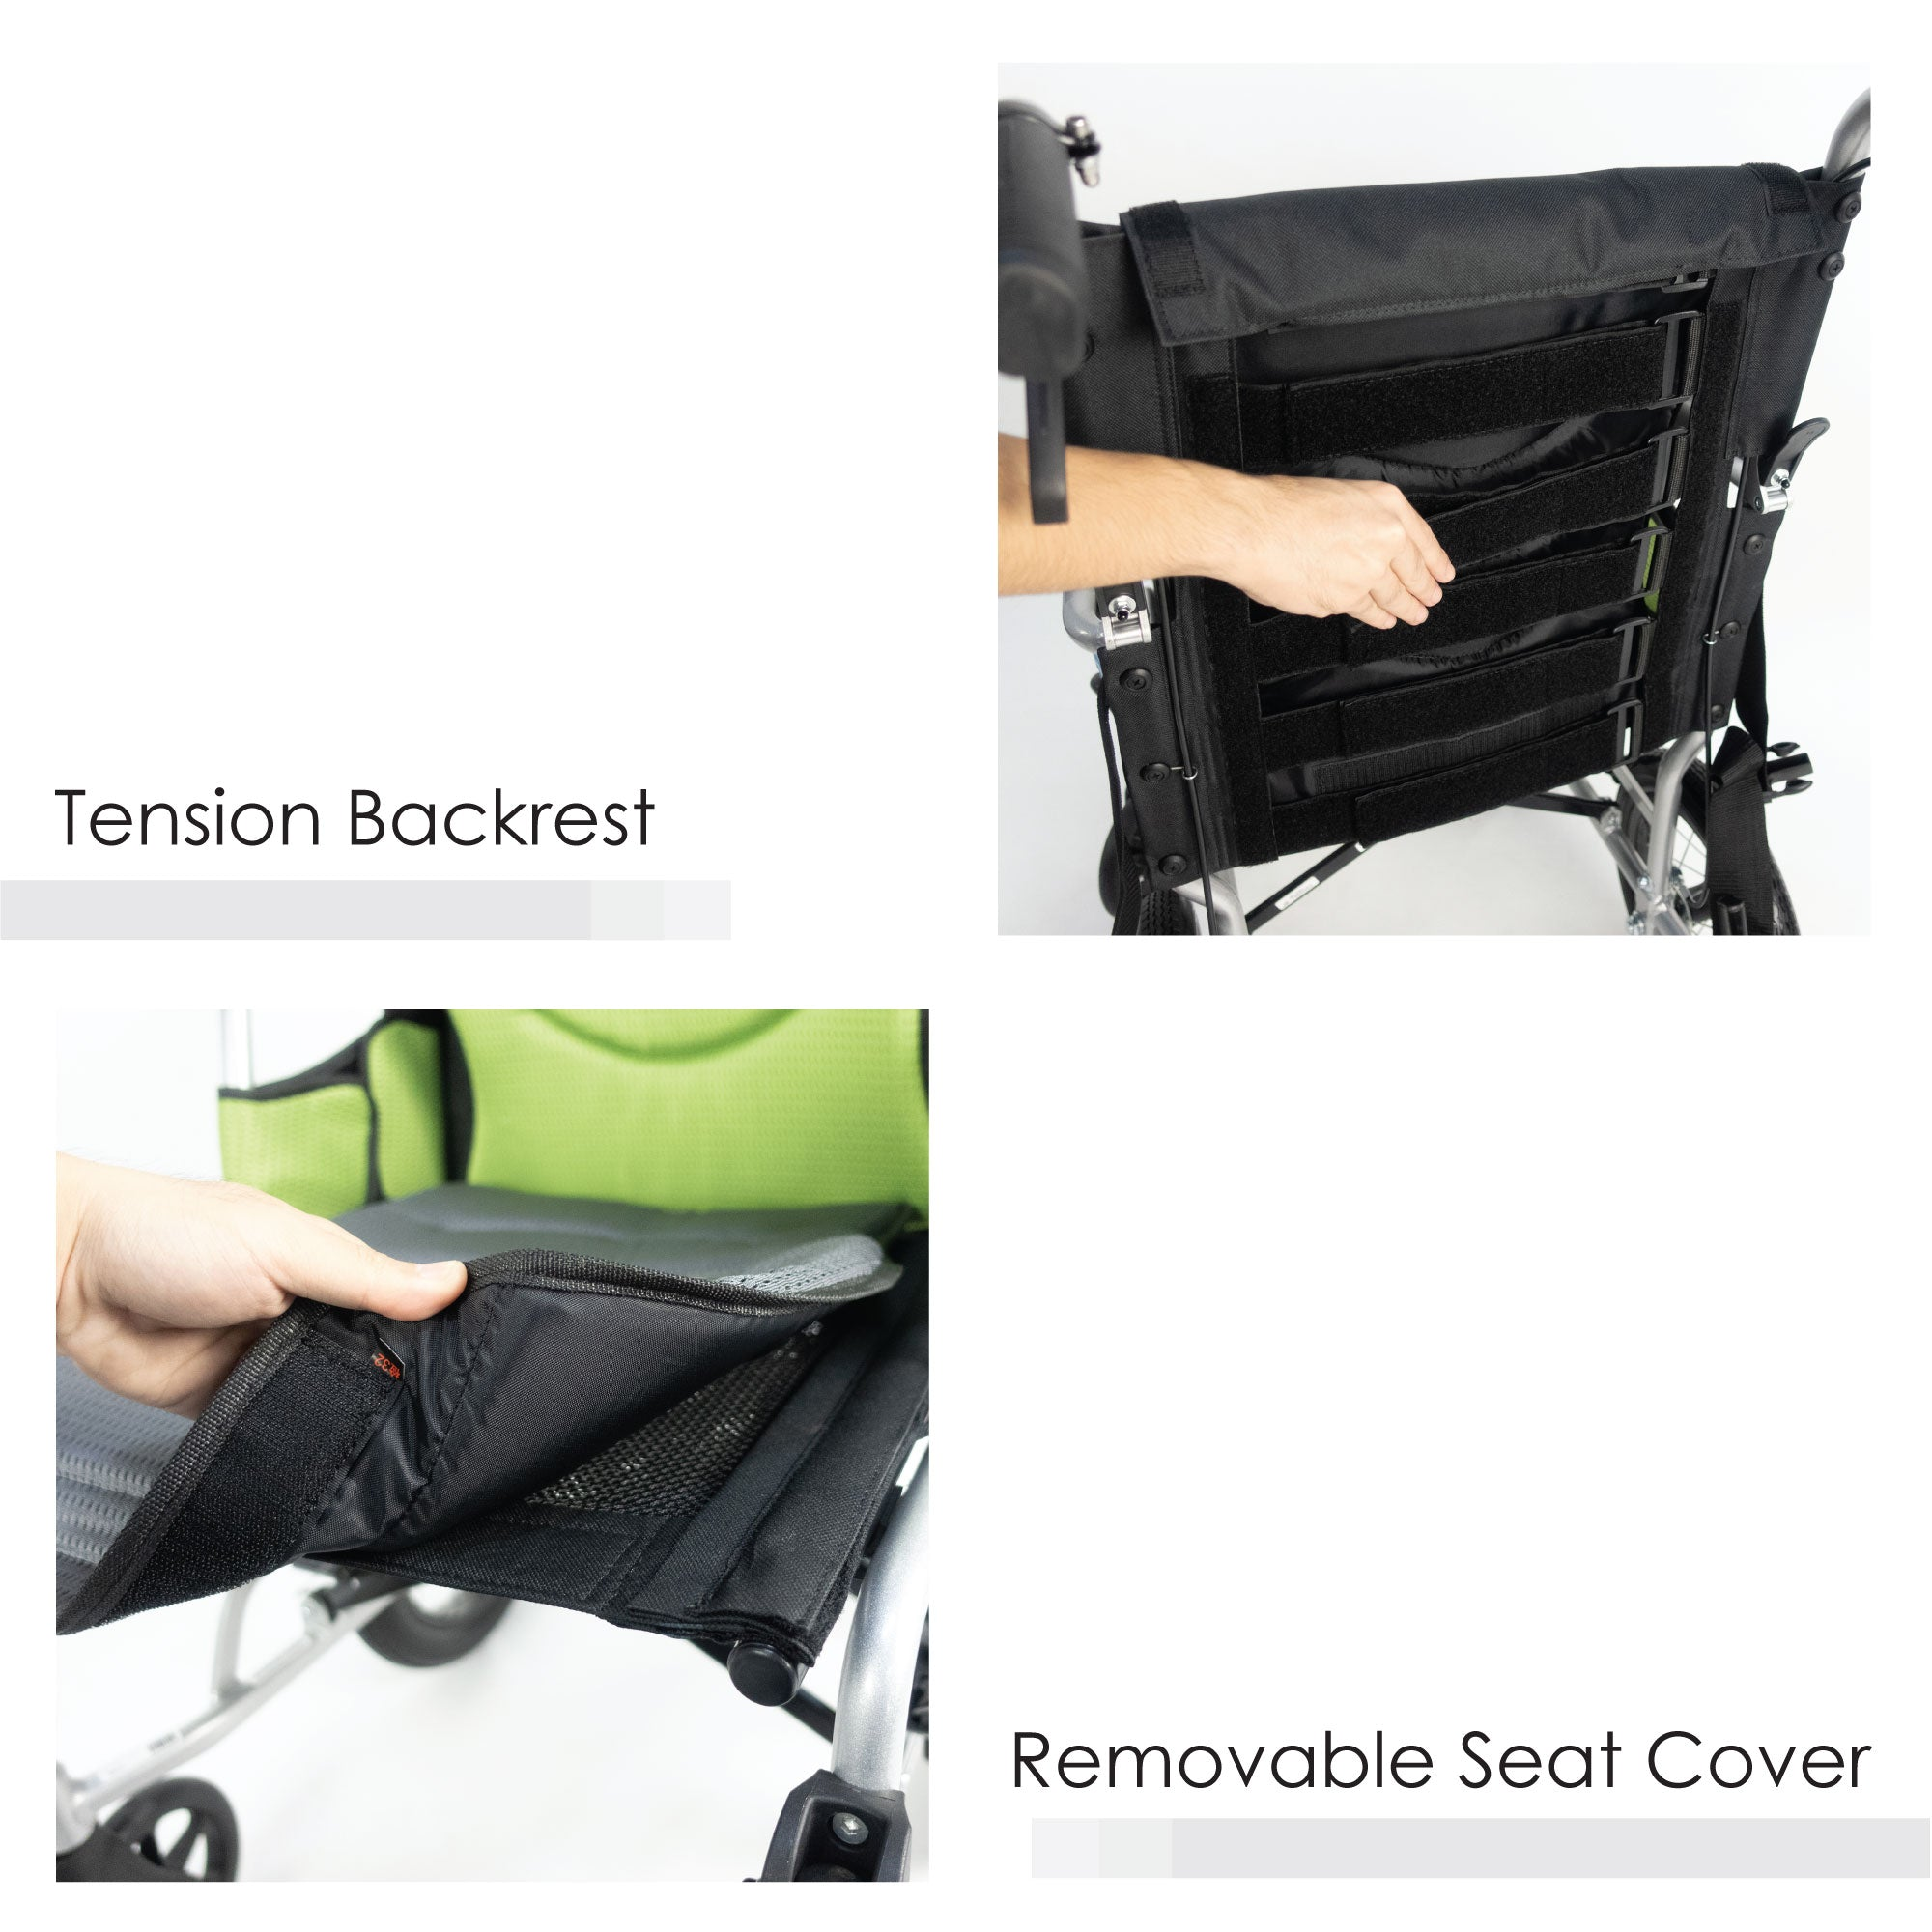 Tension Backrest & Removable Seat Cover